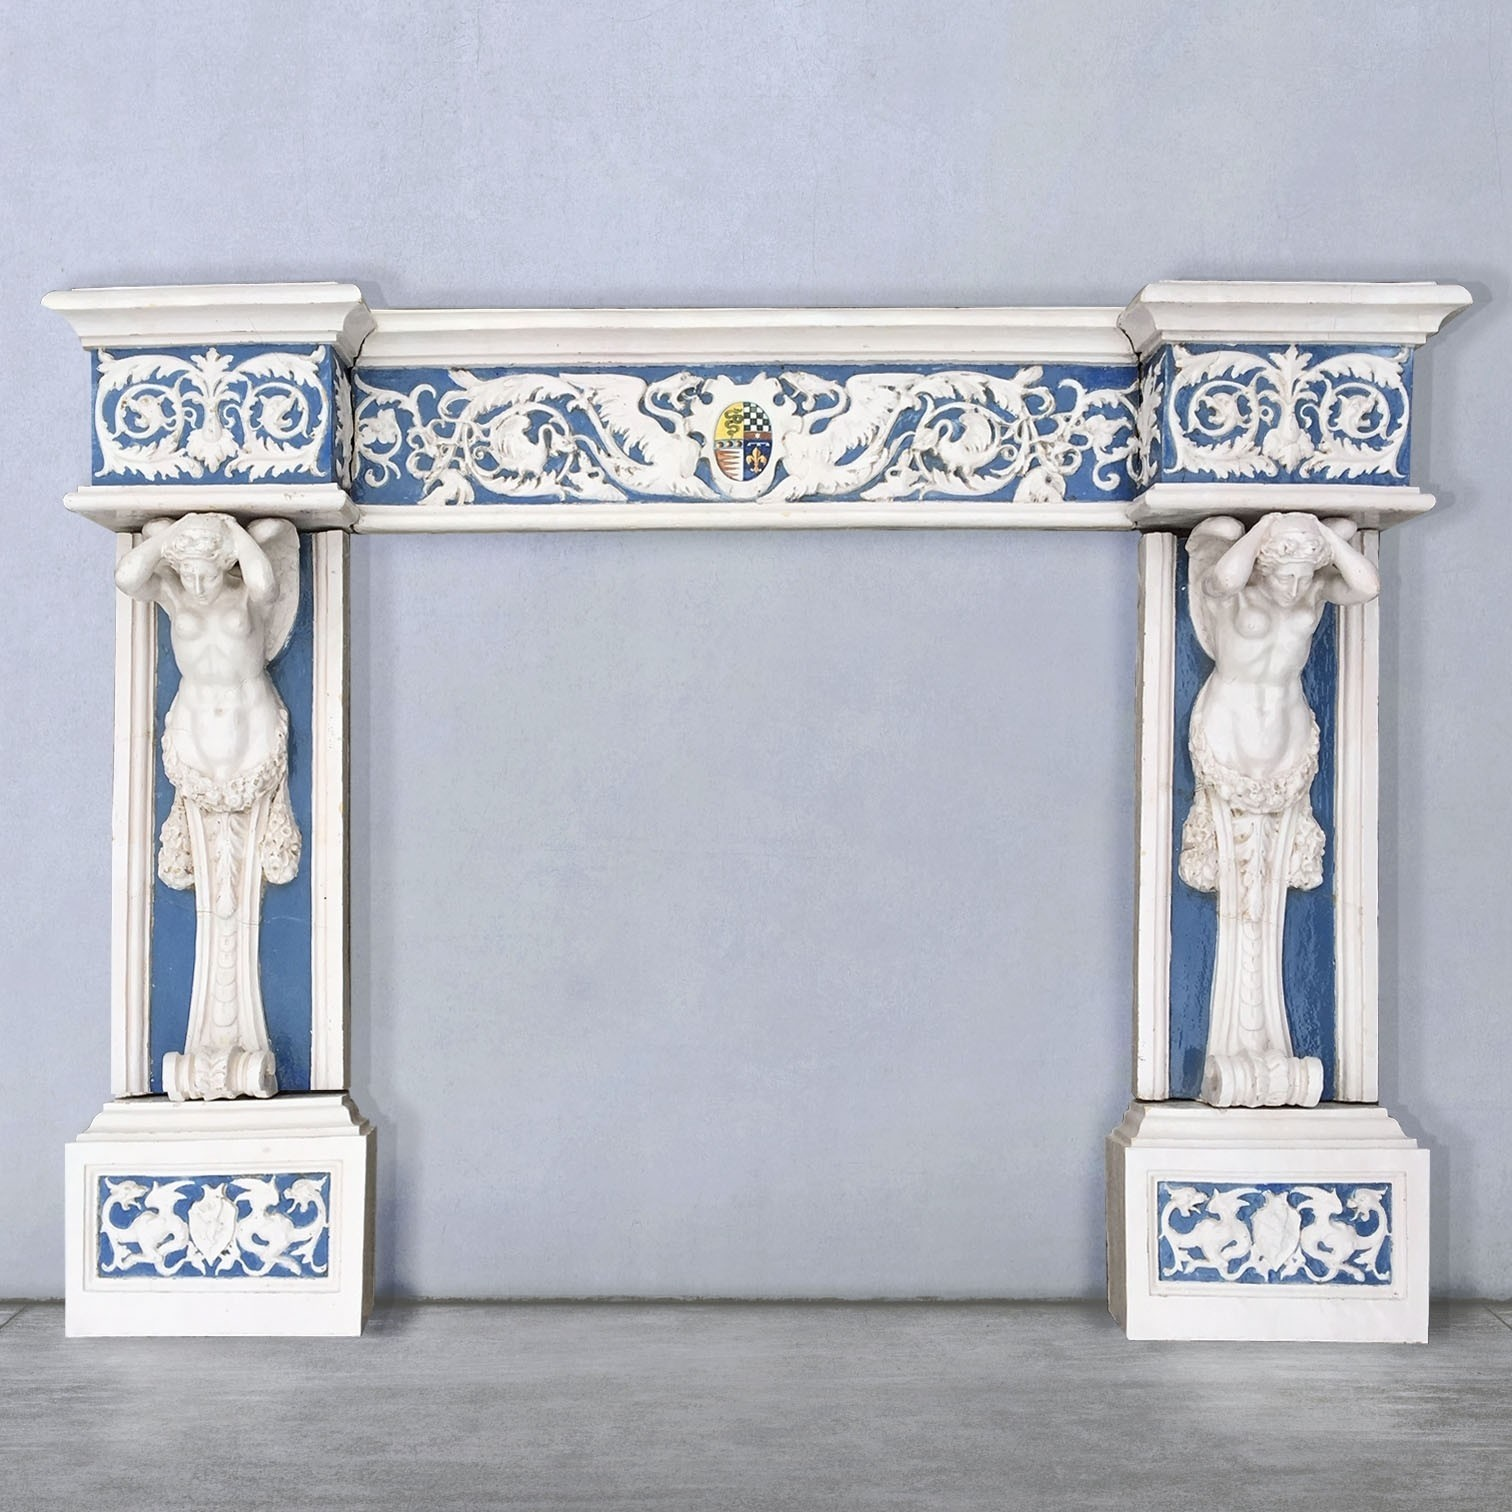 Cantagalli fireplace 19th century pottery Della Robbia style